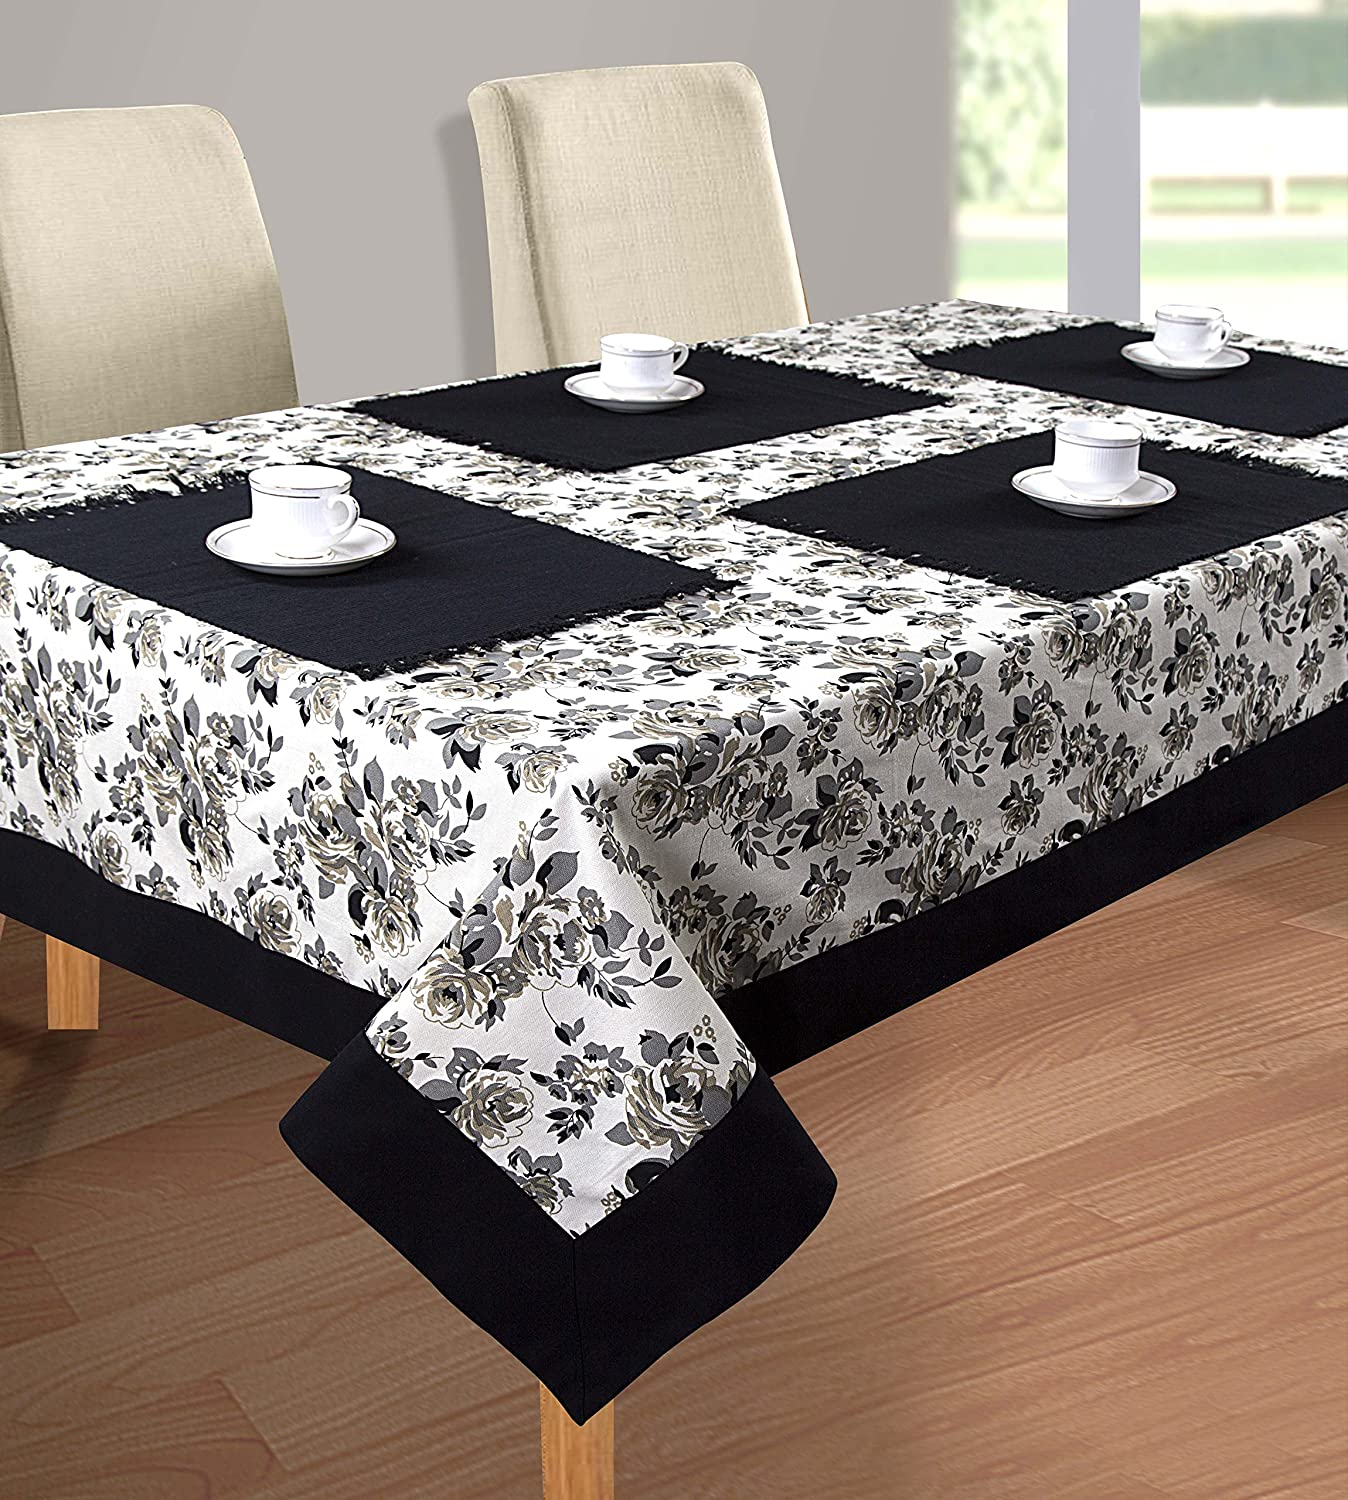 Cloth Fusion Cotton Center Table Cover 4 Seater - (40x60 Inch, Grey)